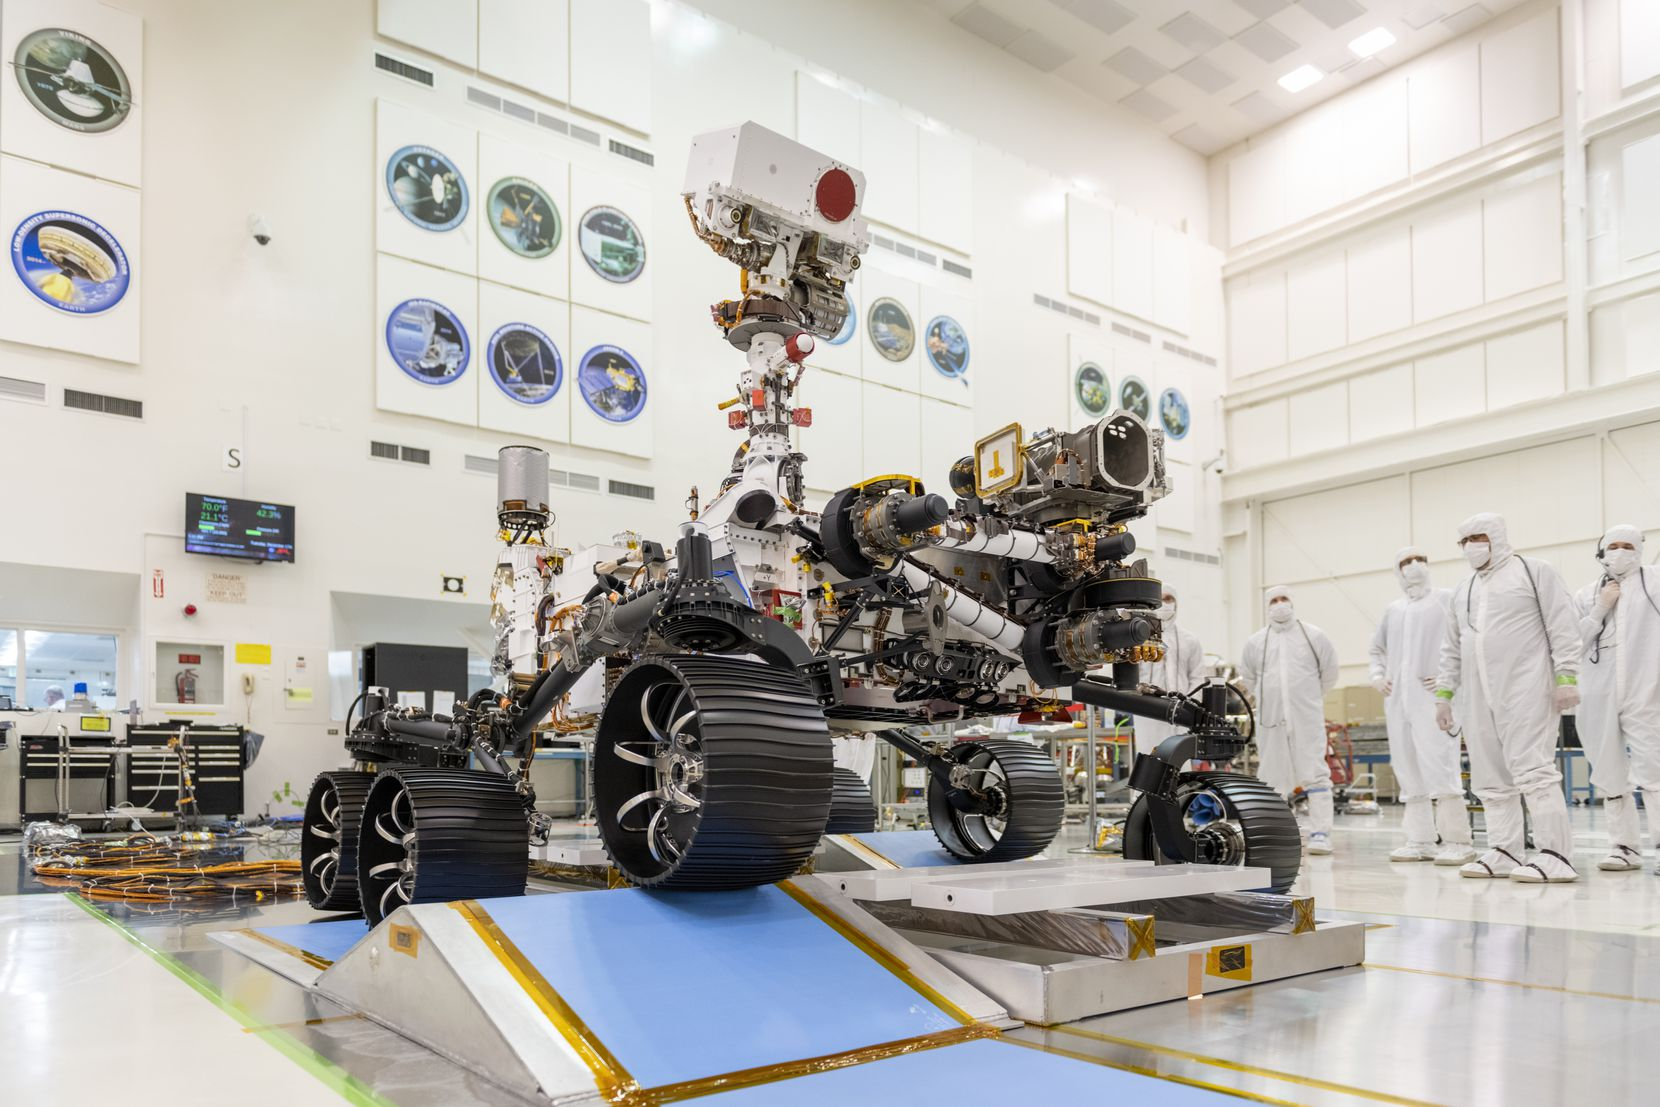 In a clean room at NASA's Jet Propulsion Laboratory in Pasadena, Calif., engineers observed the first driving test for NASA's Mars 2020 Perseverance Rover in 2019. The Rover, which went into space last July, will hunt for signs of past microbial life and collect rock and soil samples using a calibration device designed by Jacobs and the Jet Propulsion Laboratory.